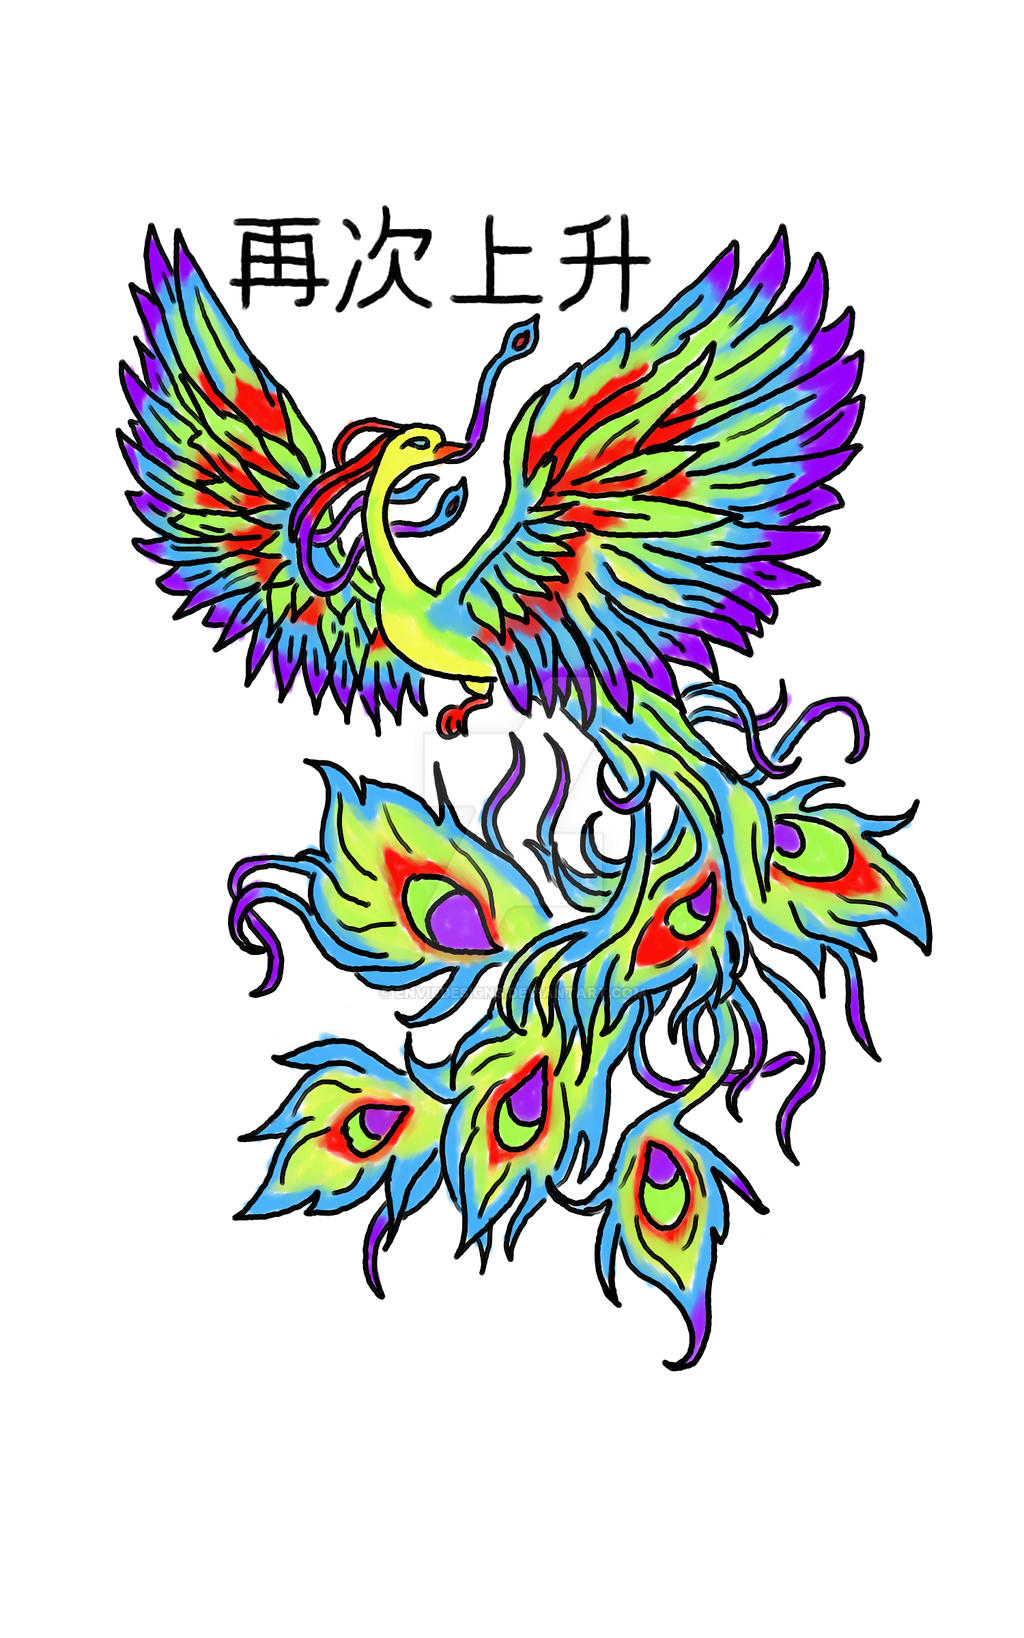 Colorful phoenix tattoo designs - Colorful Phoenix Tattoo By Enviedesigns Colorful Phoenix Tattoo By Enviedesigns